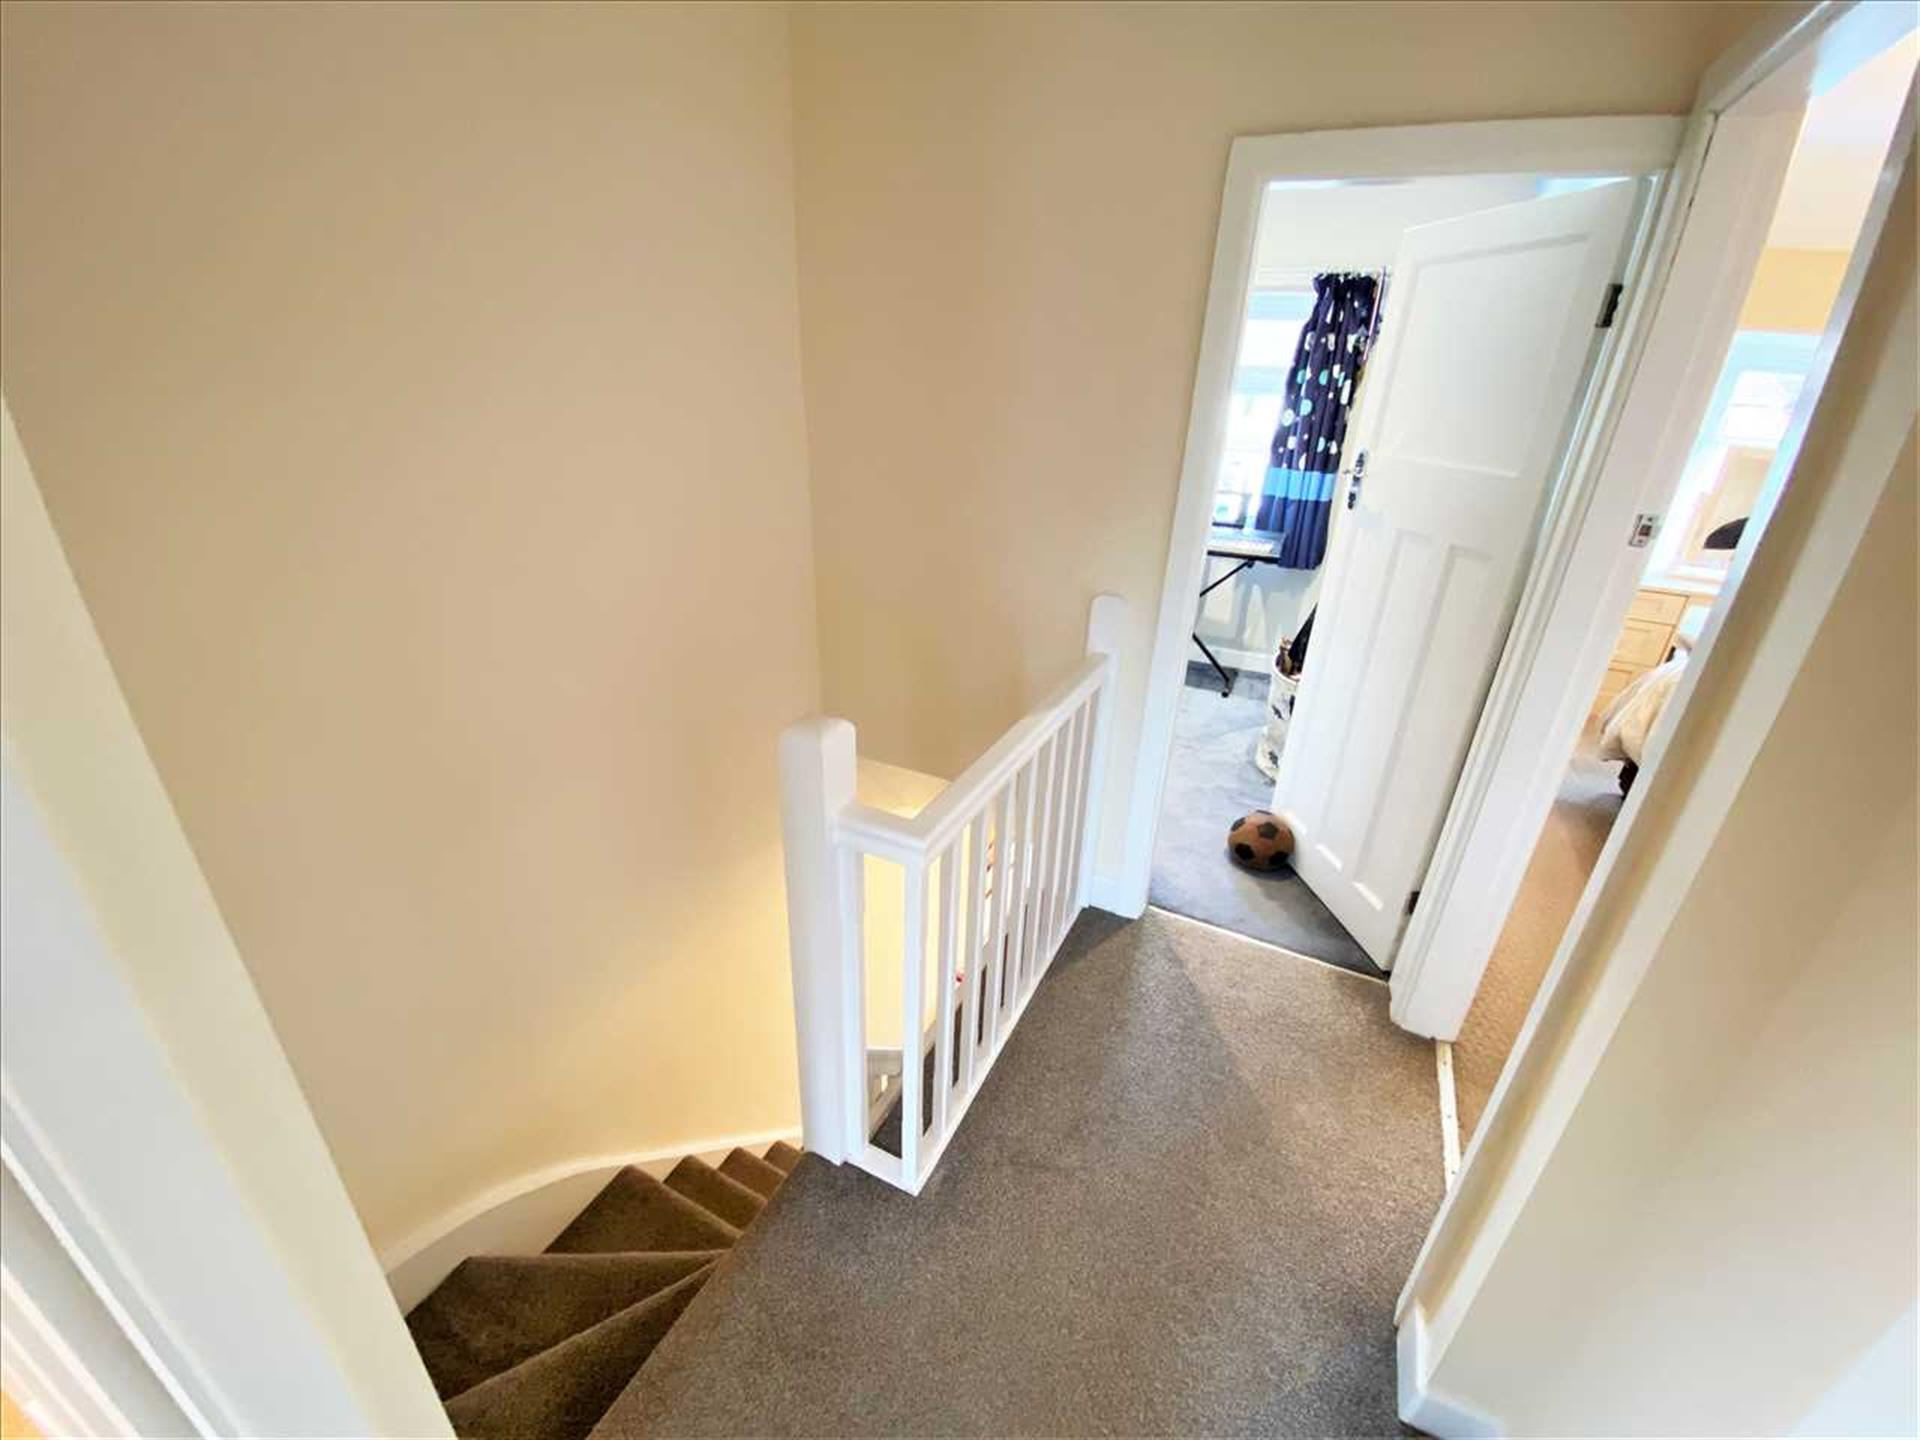 3 Bedroom Semi-detached House For Sale - Landing